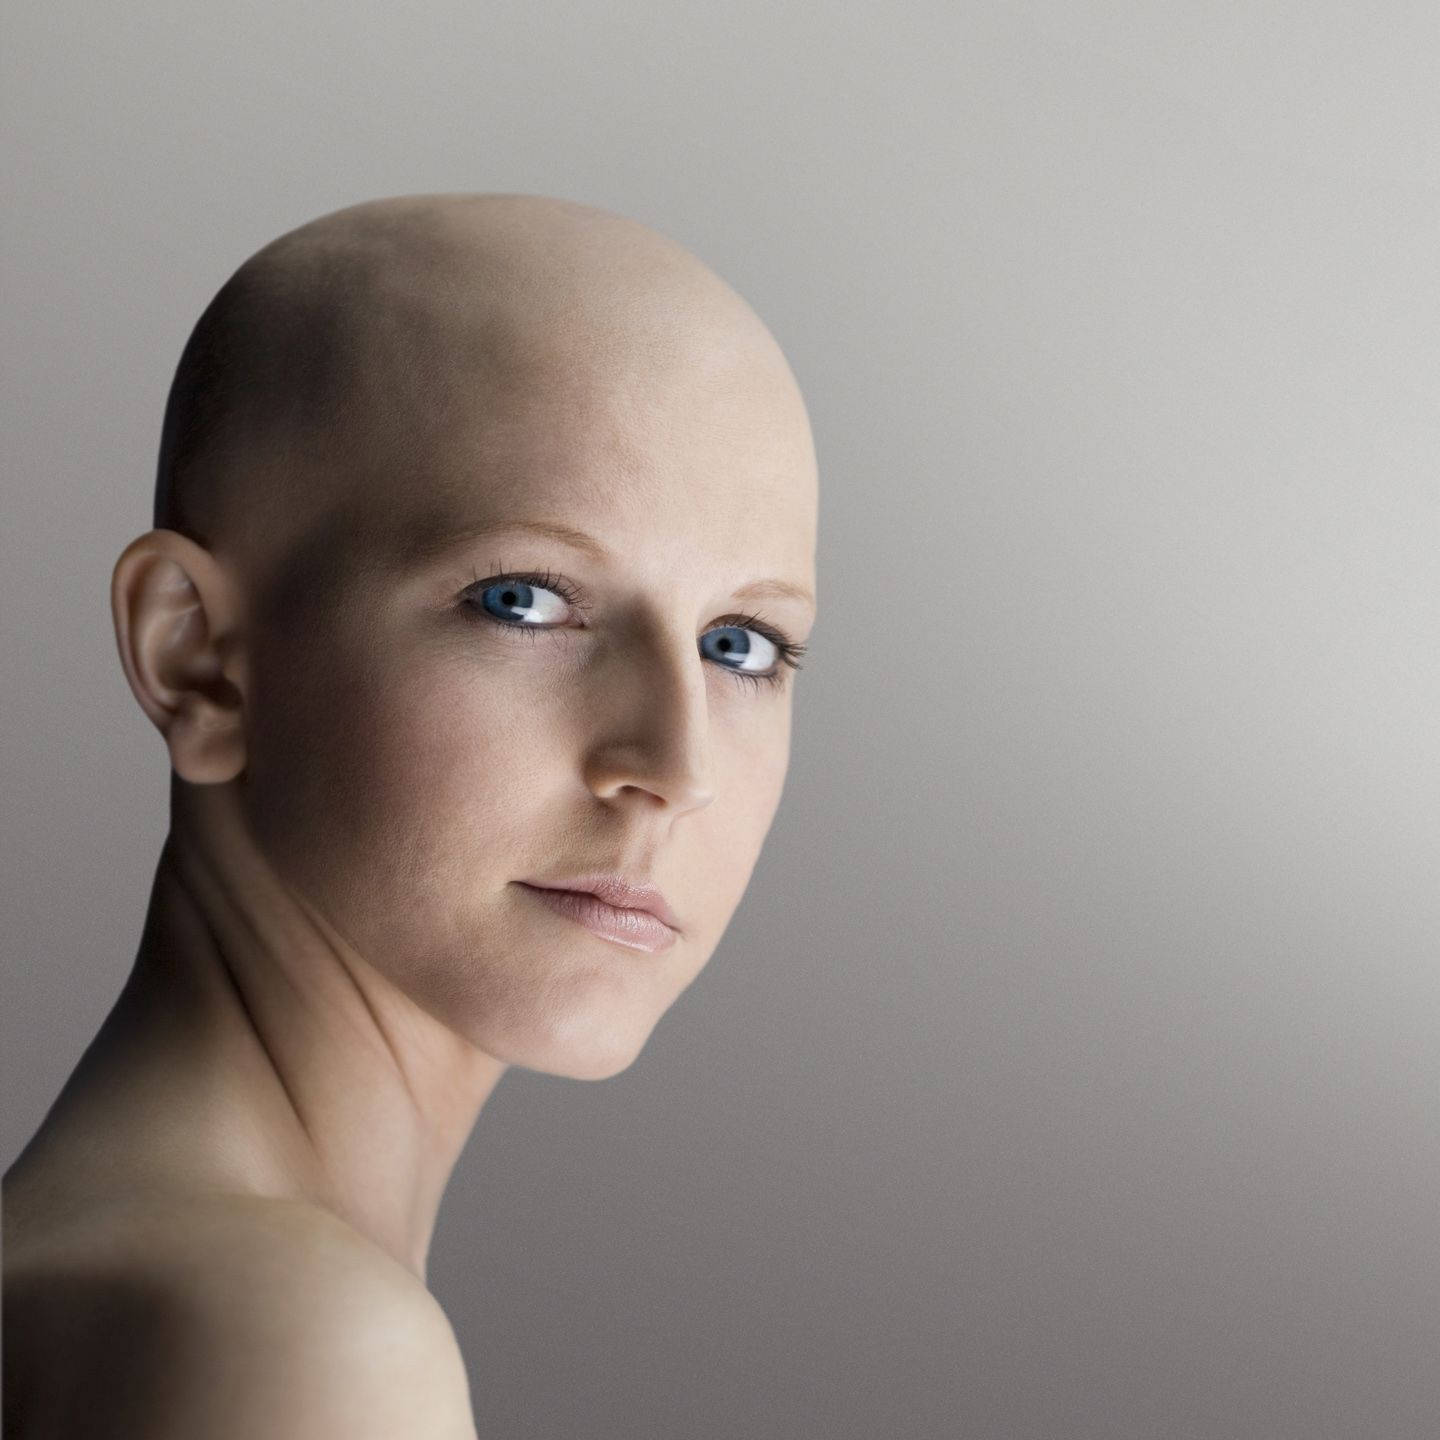 Bald girl, Cancer patients, Hair loss